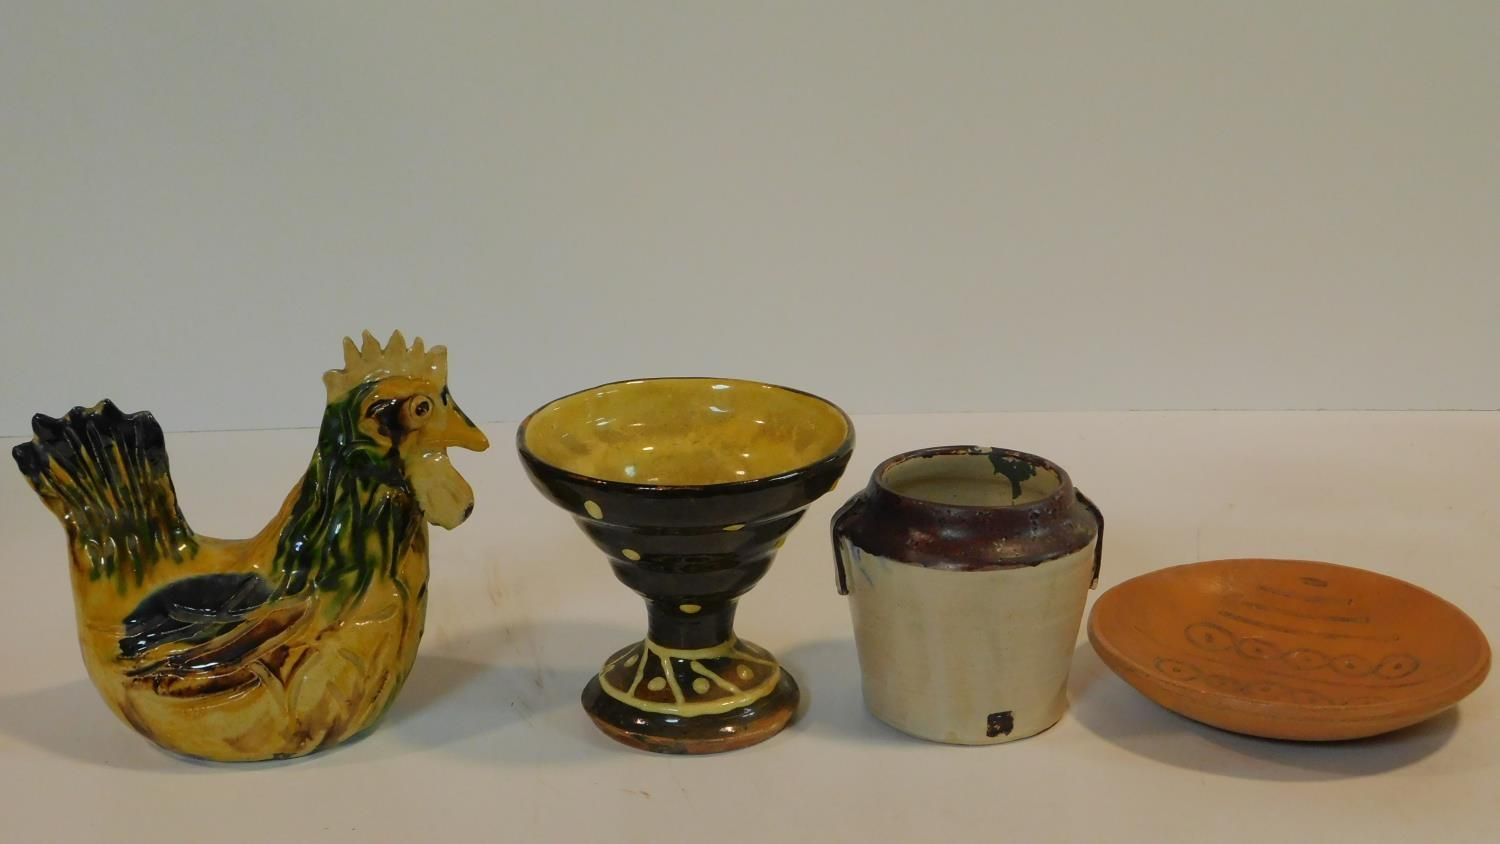 A miscellaneous collection of studio pottery, various jars, a bowl, ceramic chicken and a - Image 4 of 6